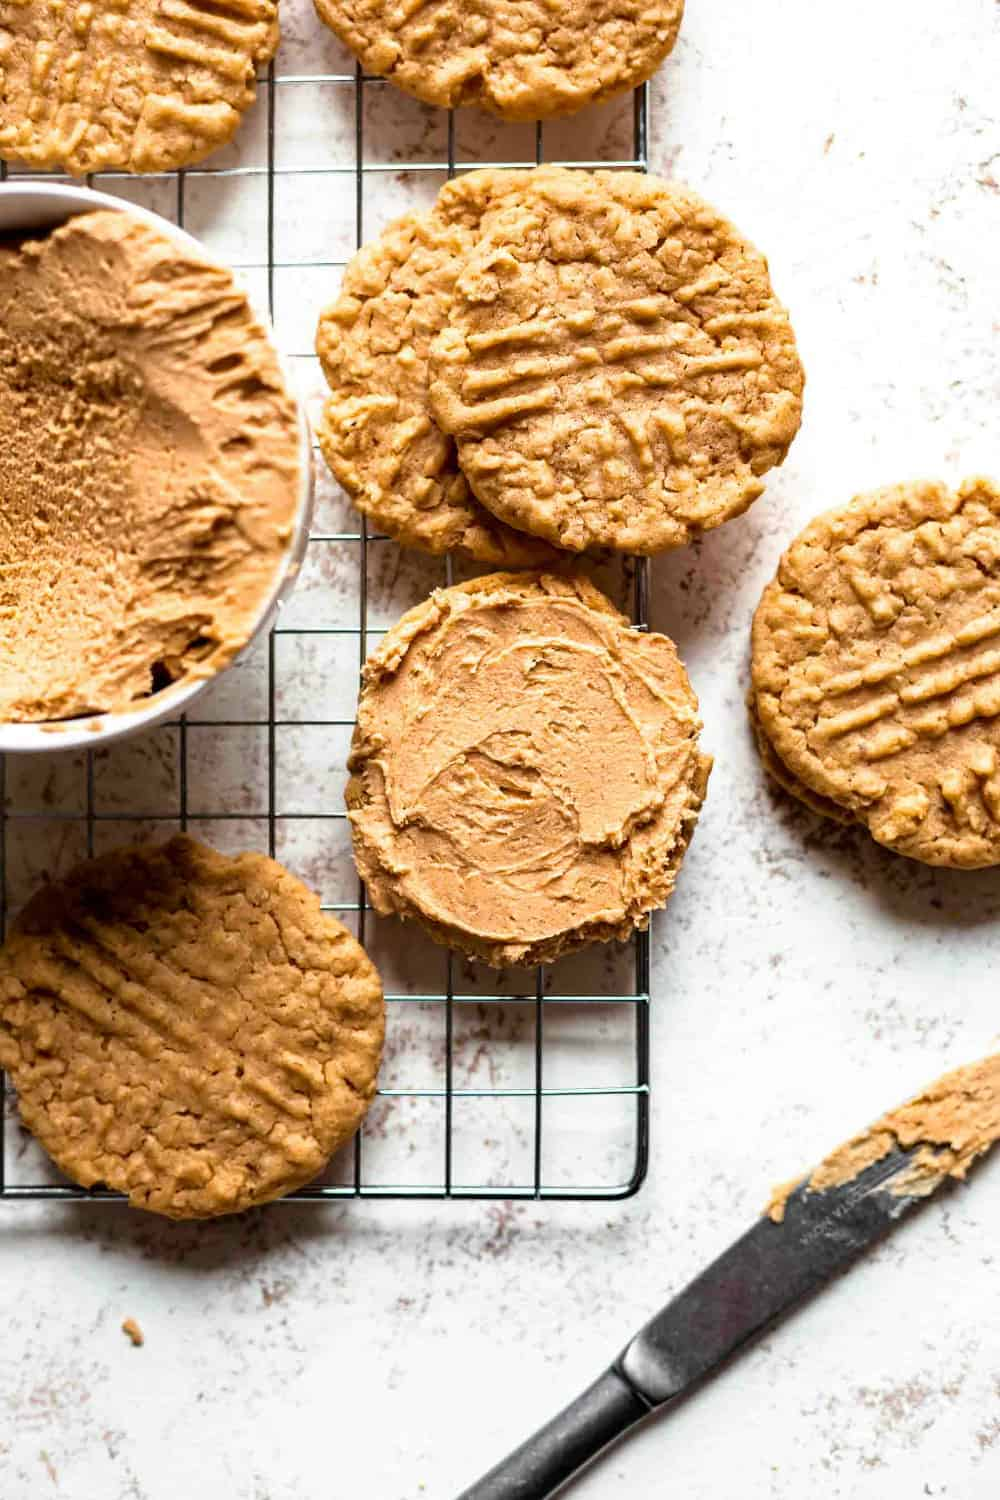 Bowl of peanut butter filling surrounded by peanut butter cookies. One of the cookies is topped with peanut butter filling